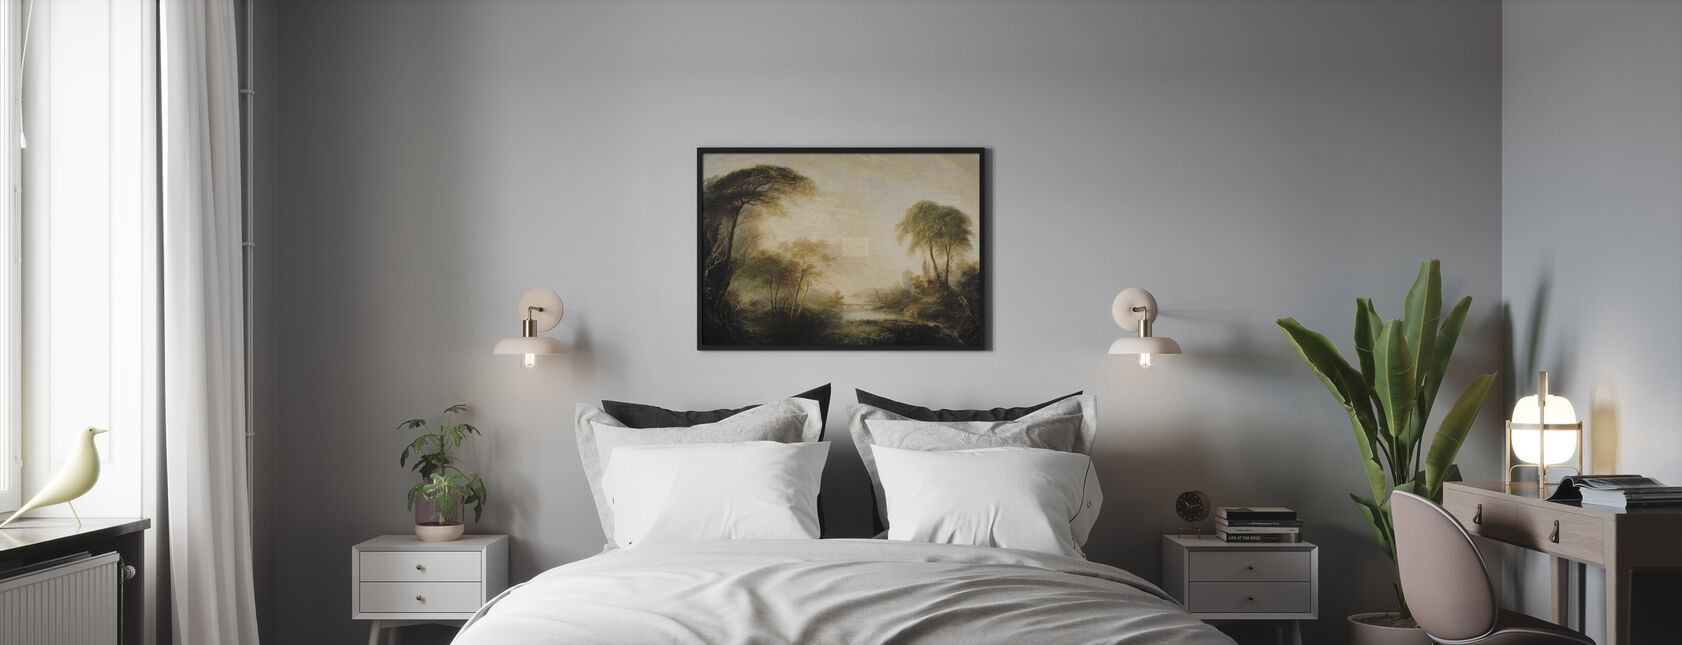 Paysage luxuriant - Affiche - Chambre